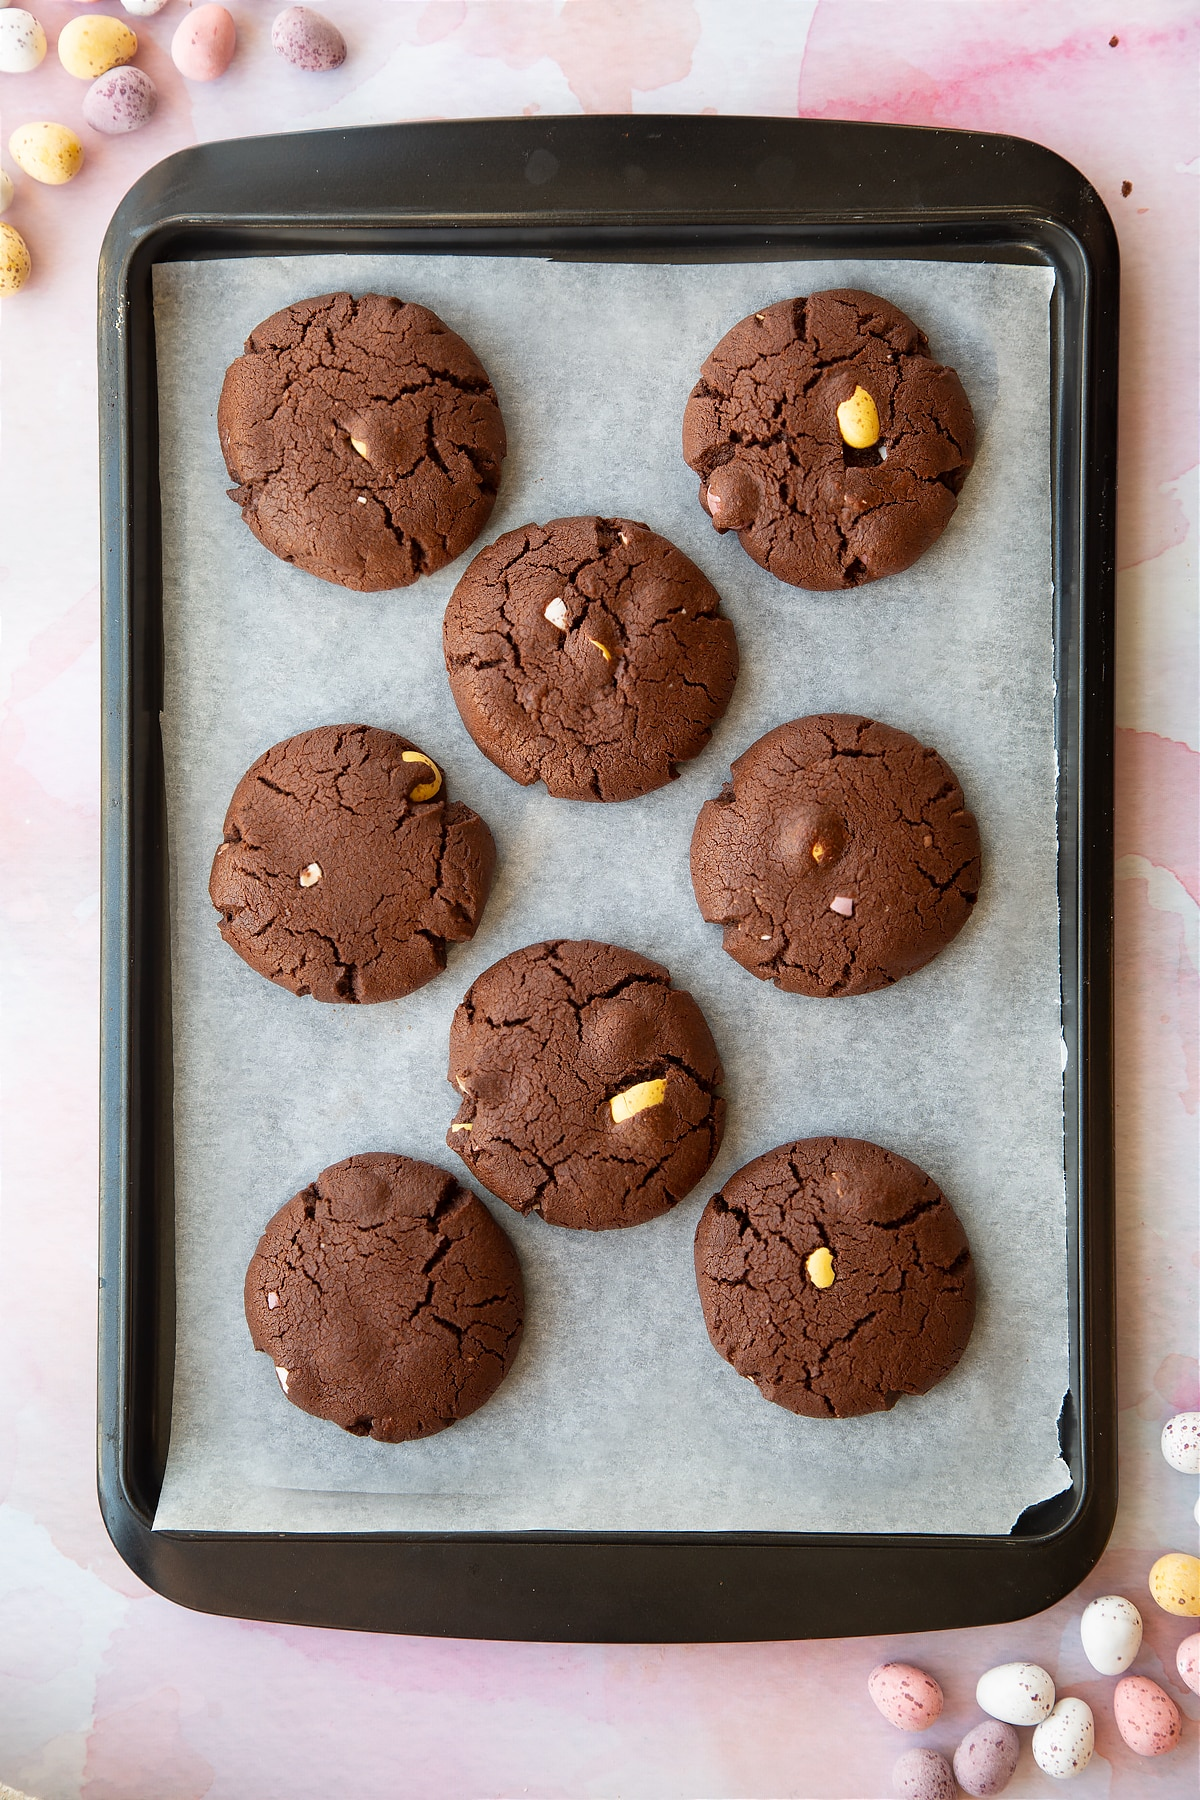 Chocolate Easter cookies on a tray lined with baking paper.